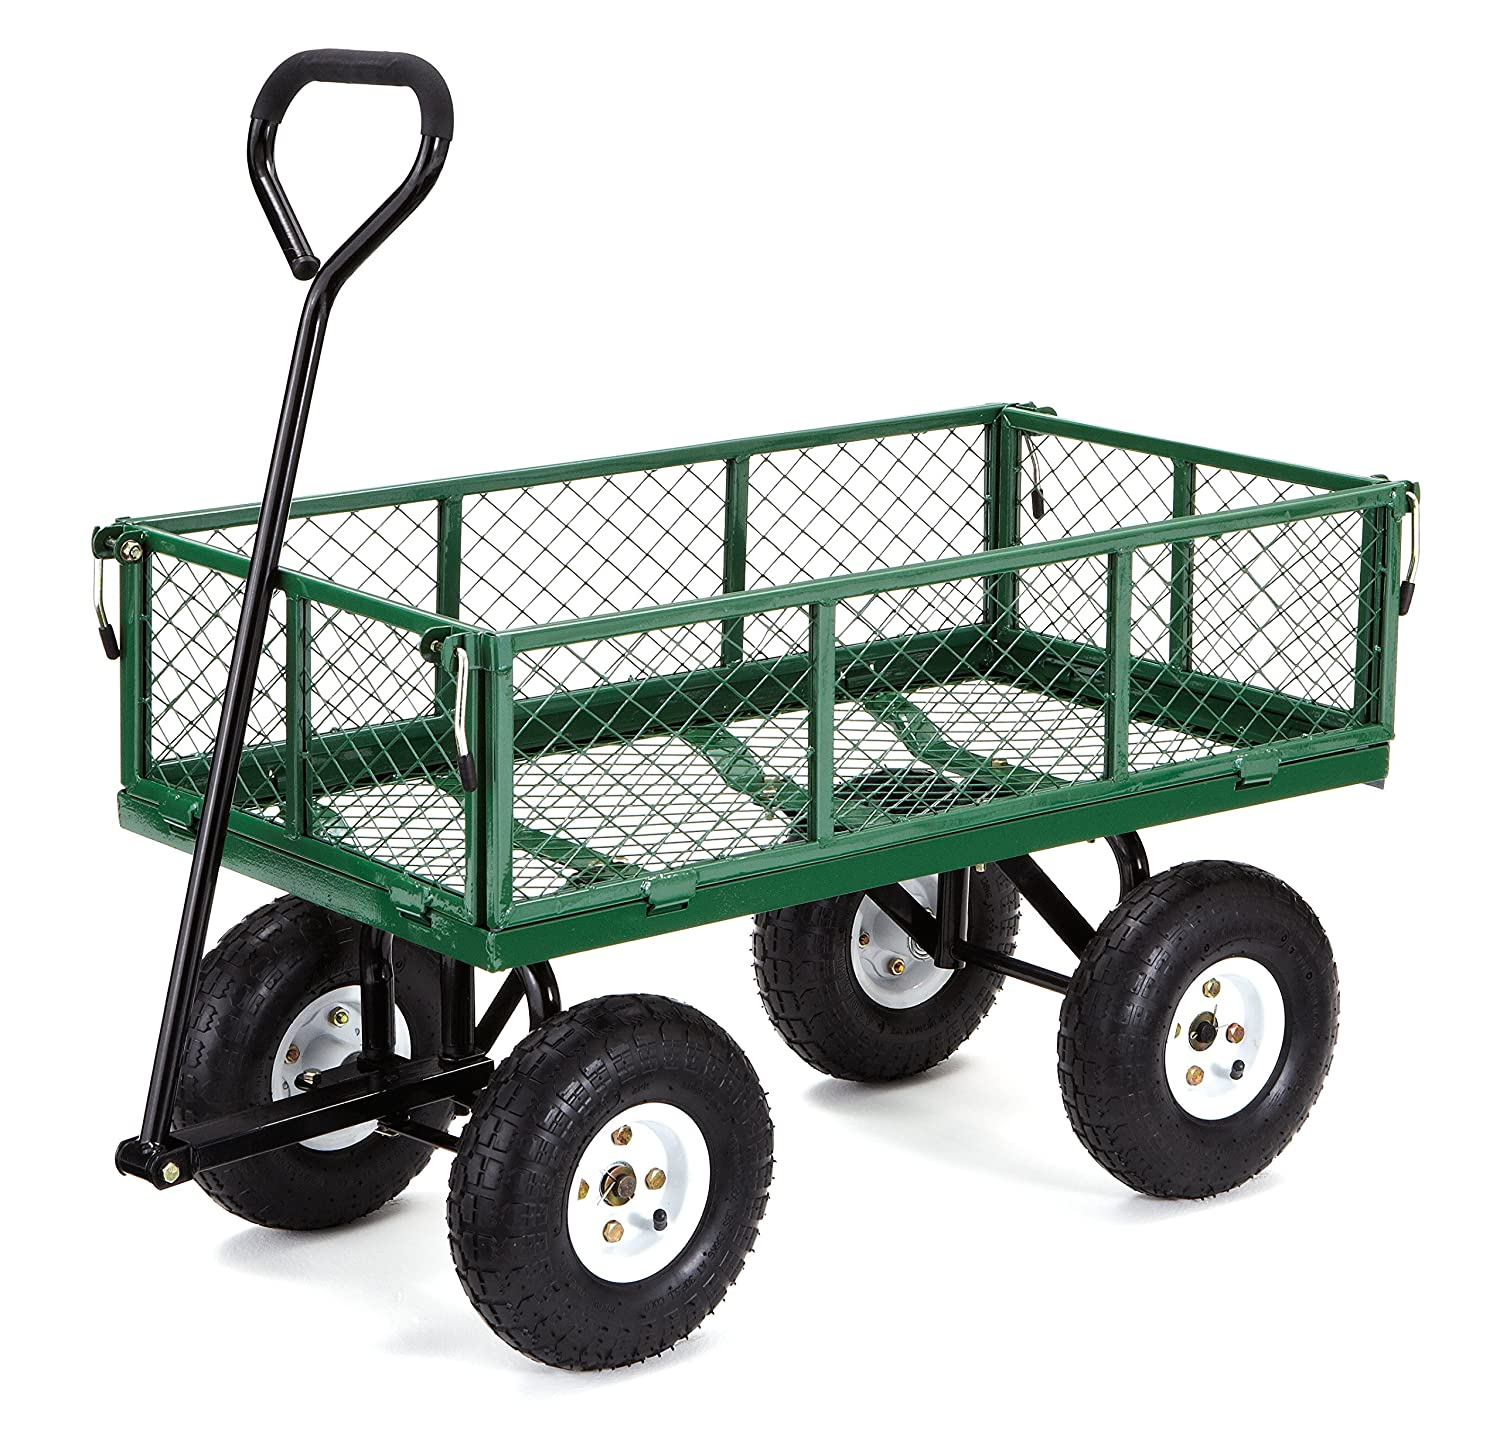 gorilla cart, gorilla wagon, gorilla dump cart, gorilla garden cart, gorilla yard cart, gorilla cart accessories, gorilla garden dump cart, gorilla carts garden dump cart, gorilla utility cart, gorilla carts dump cart, gorilla lawn cart, garden dump cart, garden utility cart, gorilla cart parts, gorilla karts, yard cart, gorilla carts steel utility cart, heavy duty garden cart, gorilla steel utility cart, utility wagon cart, heavy duty garden wagon, gorilla cart 600 lb, heavy duty yard cart, yard utility cart, garden utility wagon, poly garden cart, heavy duty cart, hauling cart, riding garden cart, gorilla cart 600, steel garden cart, garden dump wagon, heavy duty yard wagon, plastic garden cart, large garden cart, heavy duty wagon cart, garden dump trailer, garden utility cart wagon